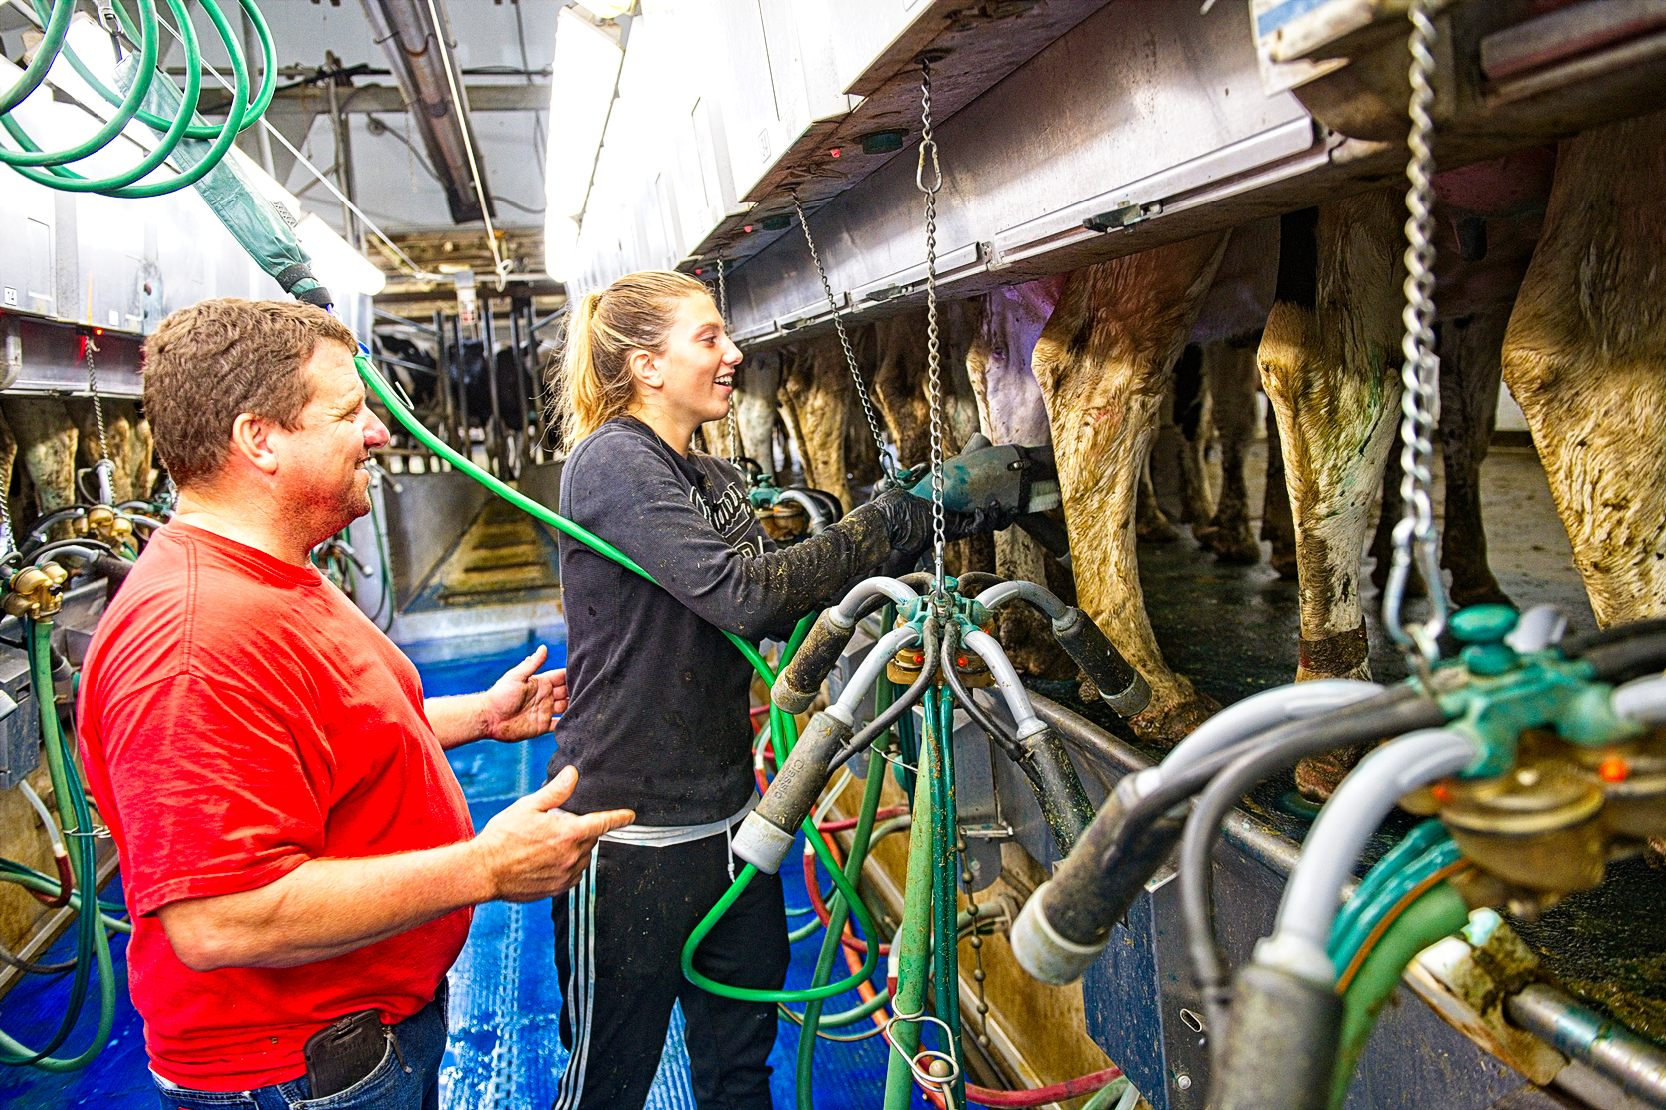 Burken's daughters, Hannah, Haley and Hillary also help out with various aspects of the dairy and farm. Photo credit: Joseph L. Murphy/Iowa Soybean Association